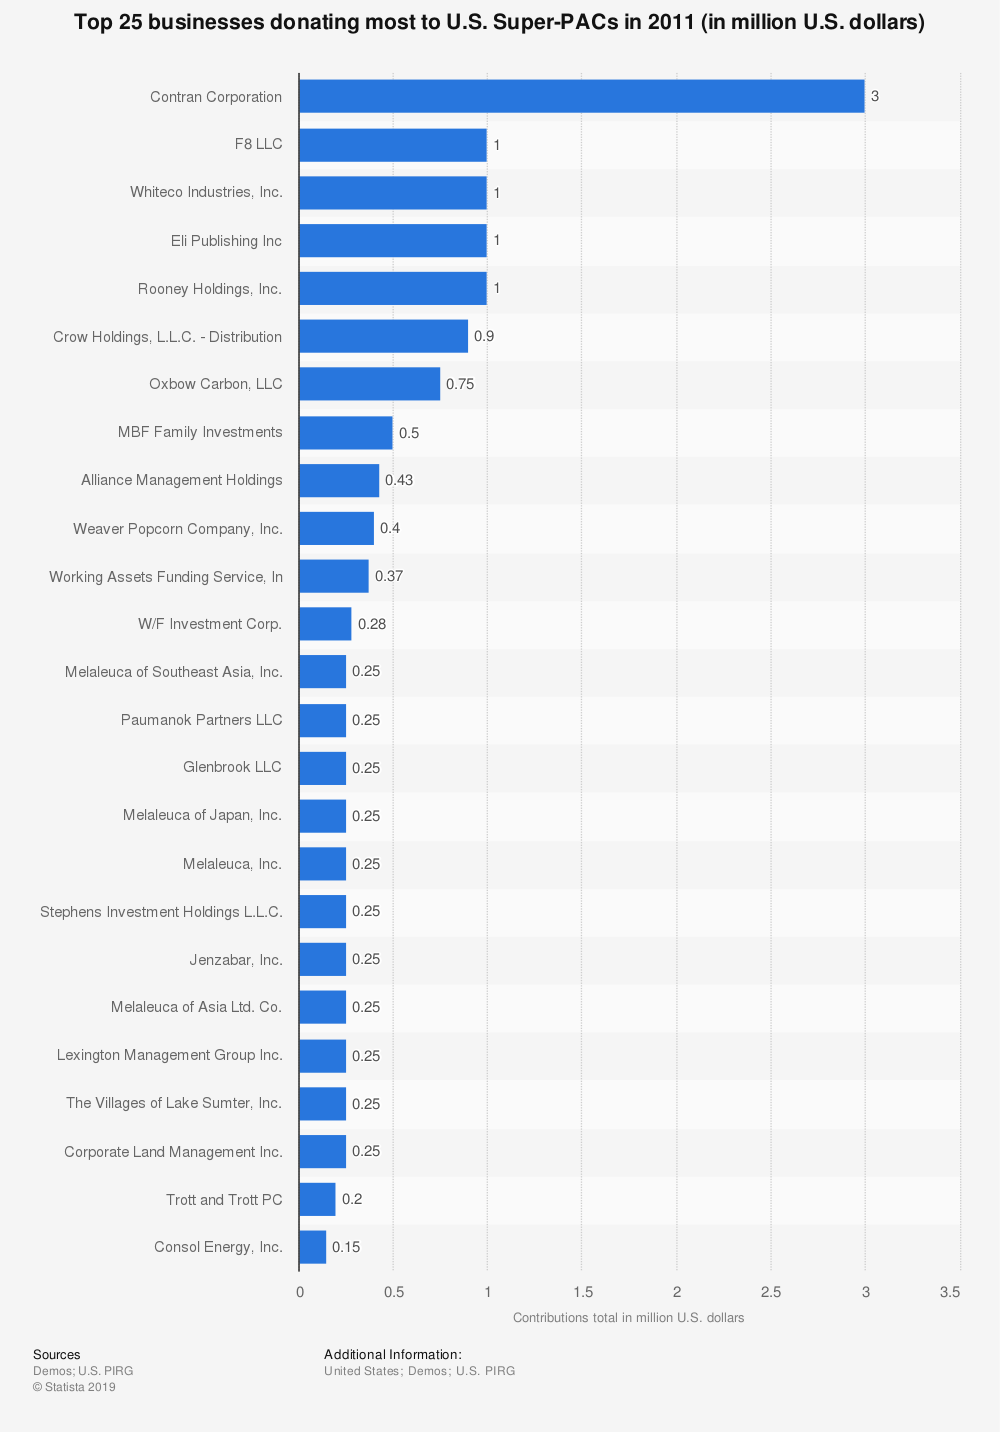 Statistic: Top 25 businesses donating most to U.S. Super-PACs in 2011 (in million U.S. dollars) | Statista